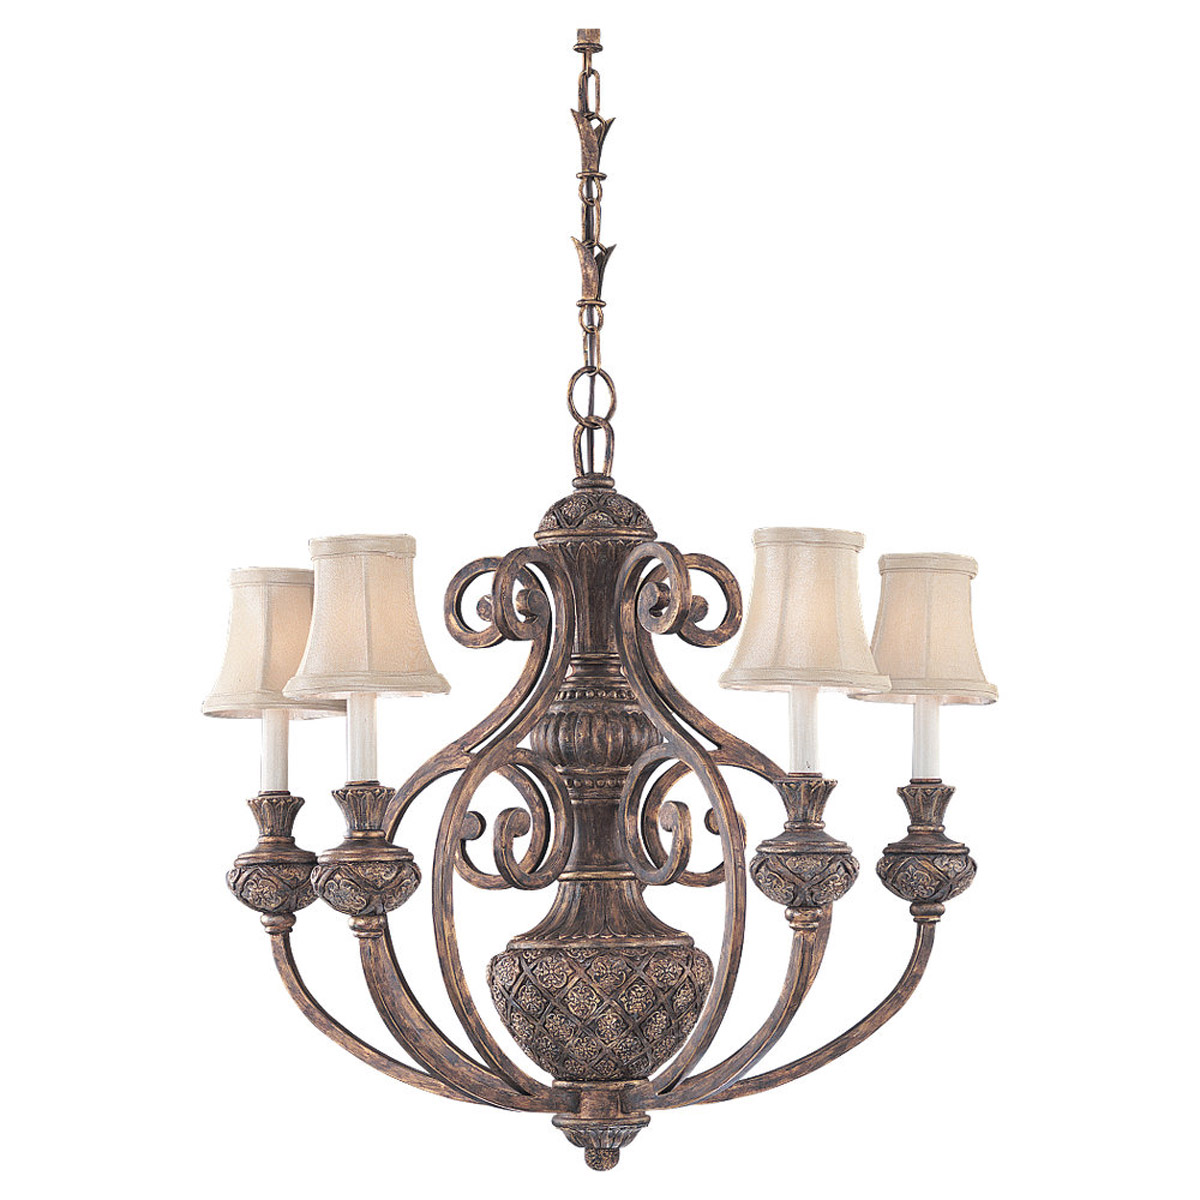 Sea Gull Lighting Highlands 5 Light Chandelier in Regal Bronze 31251-758